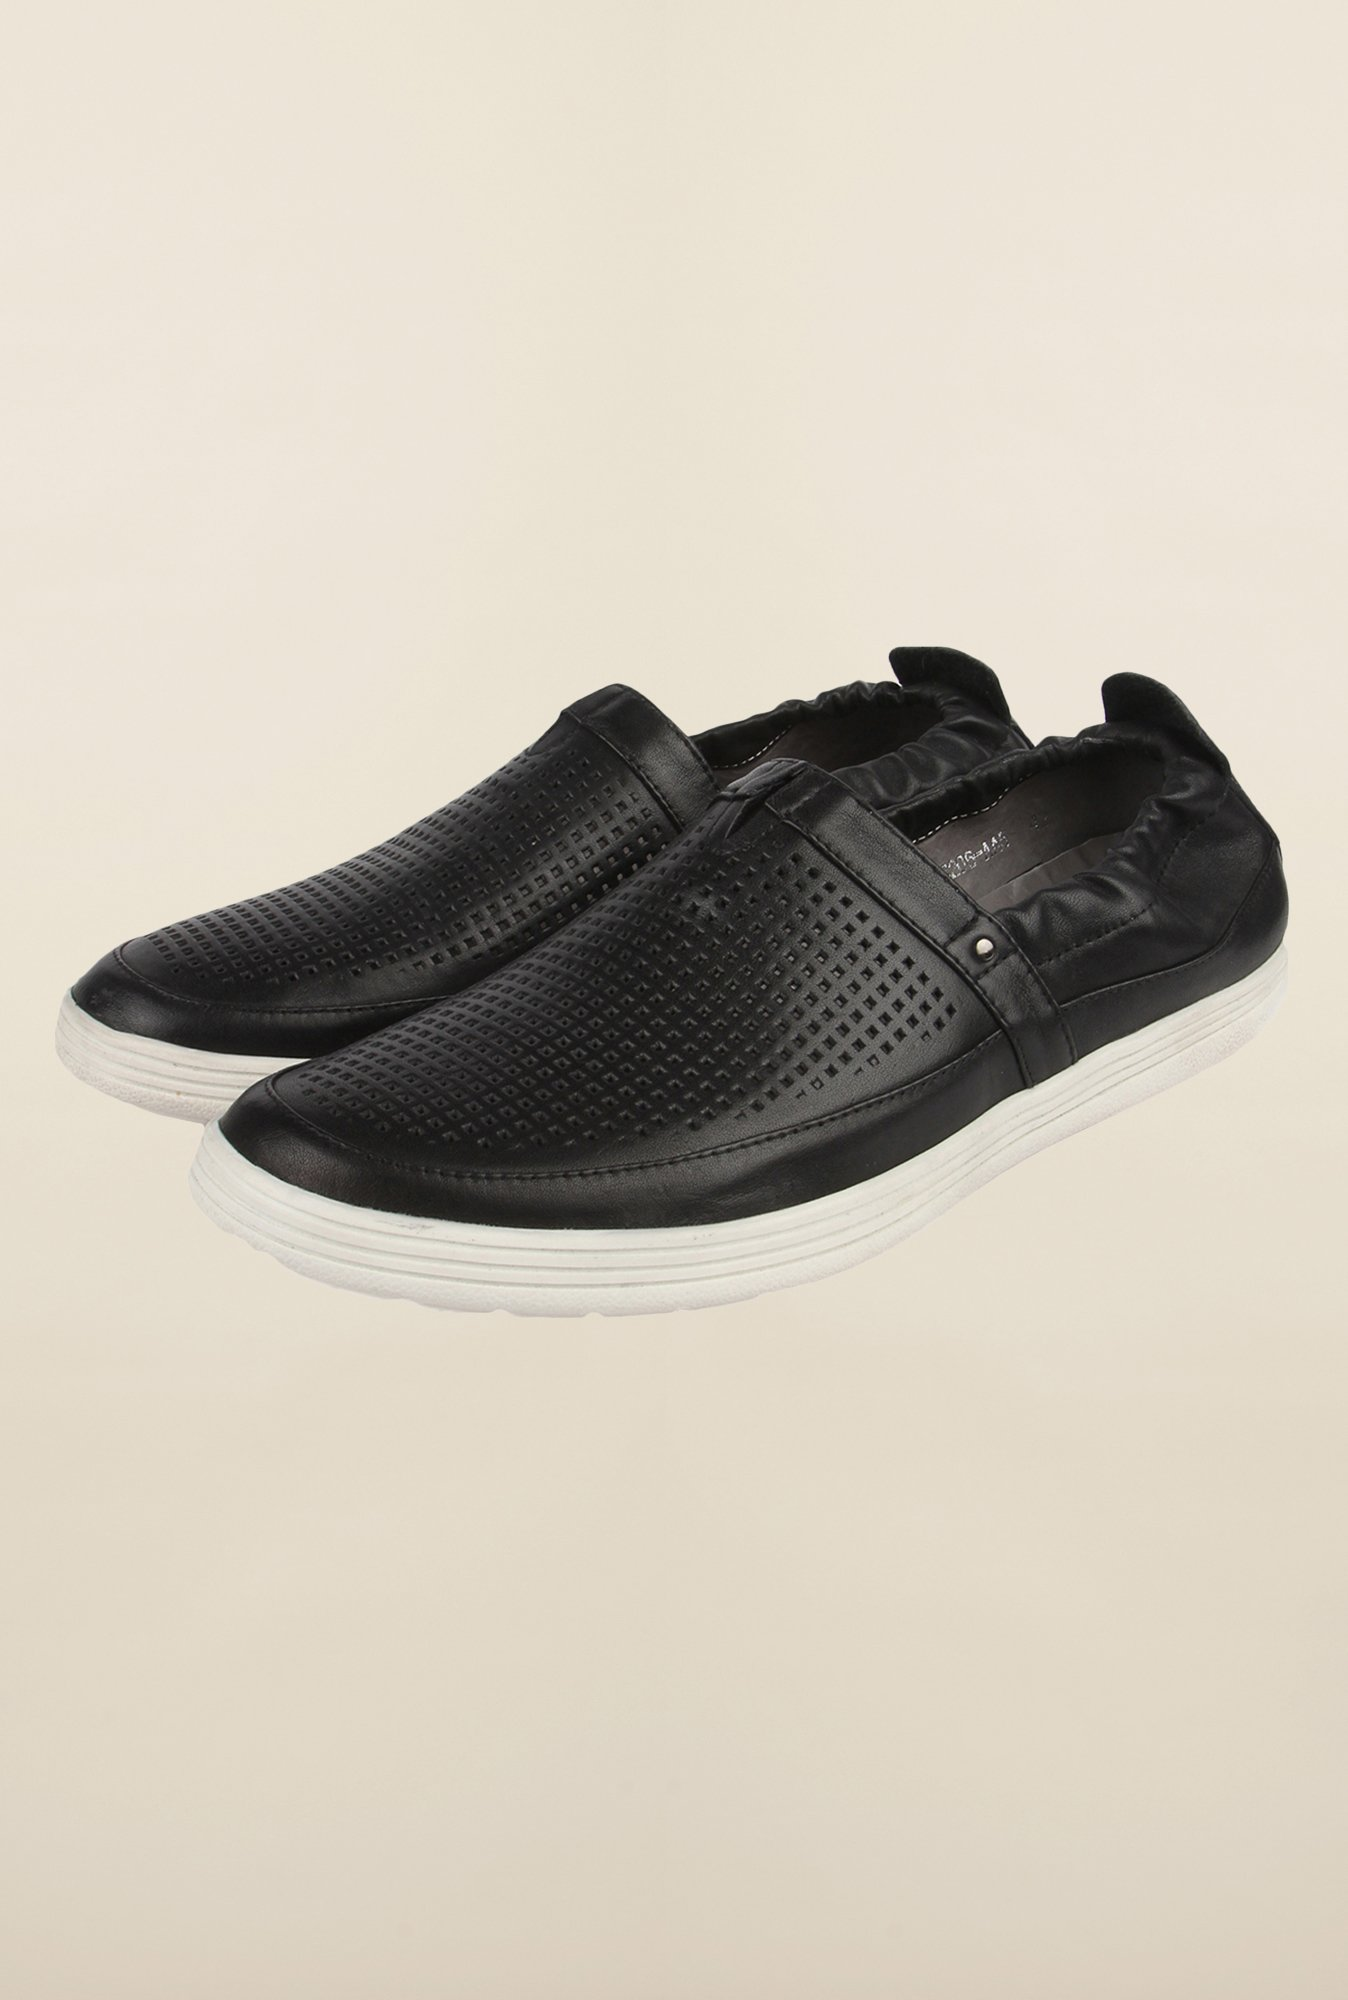 Cobblerz Black Casual Slip-Ons